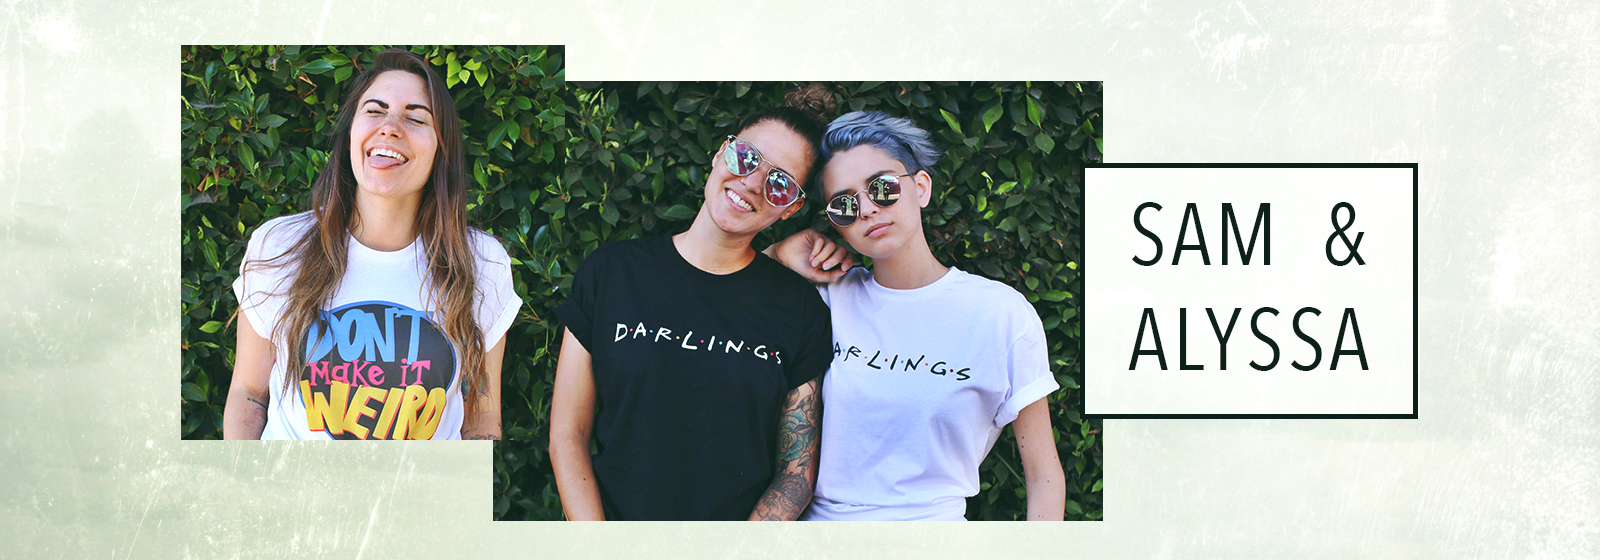 Sam & Alyssa Official Store Store